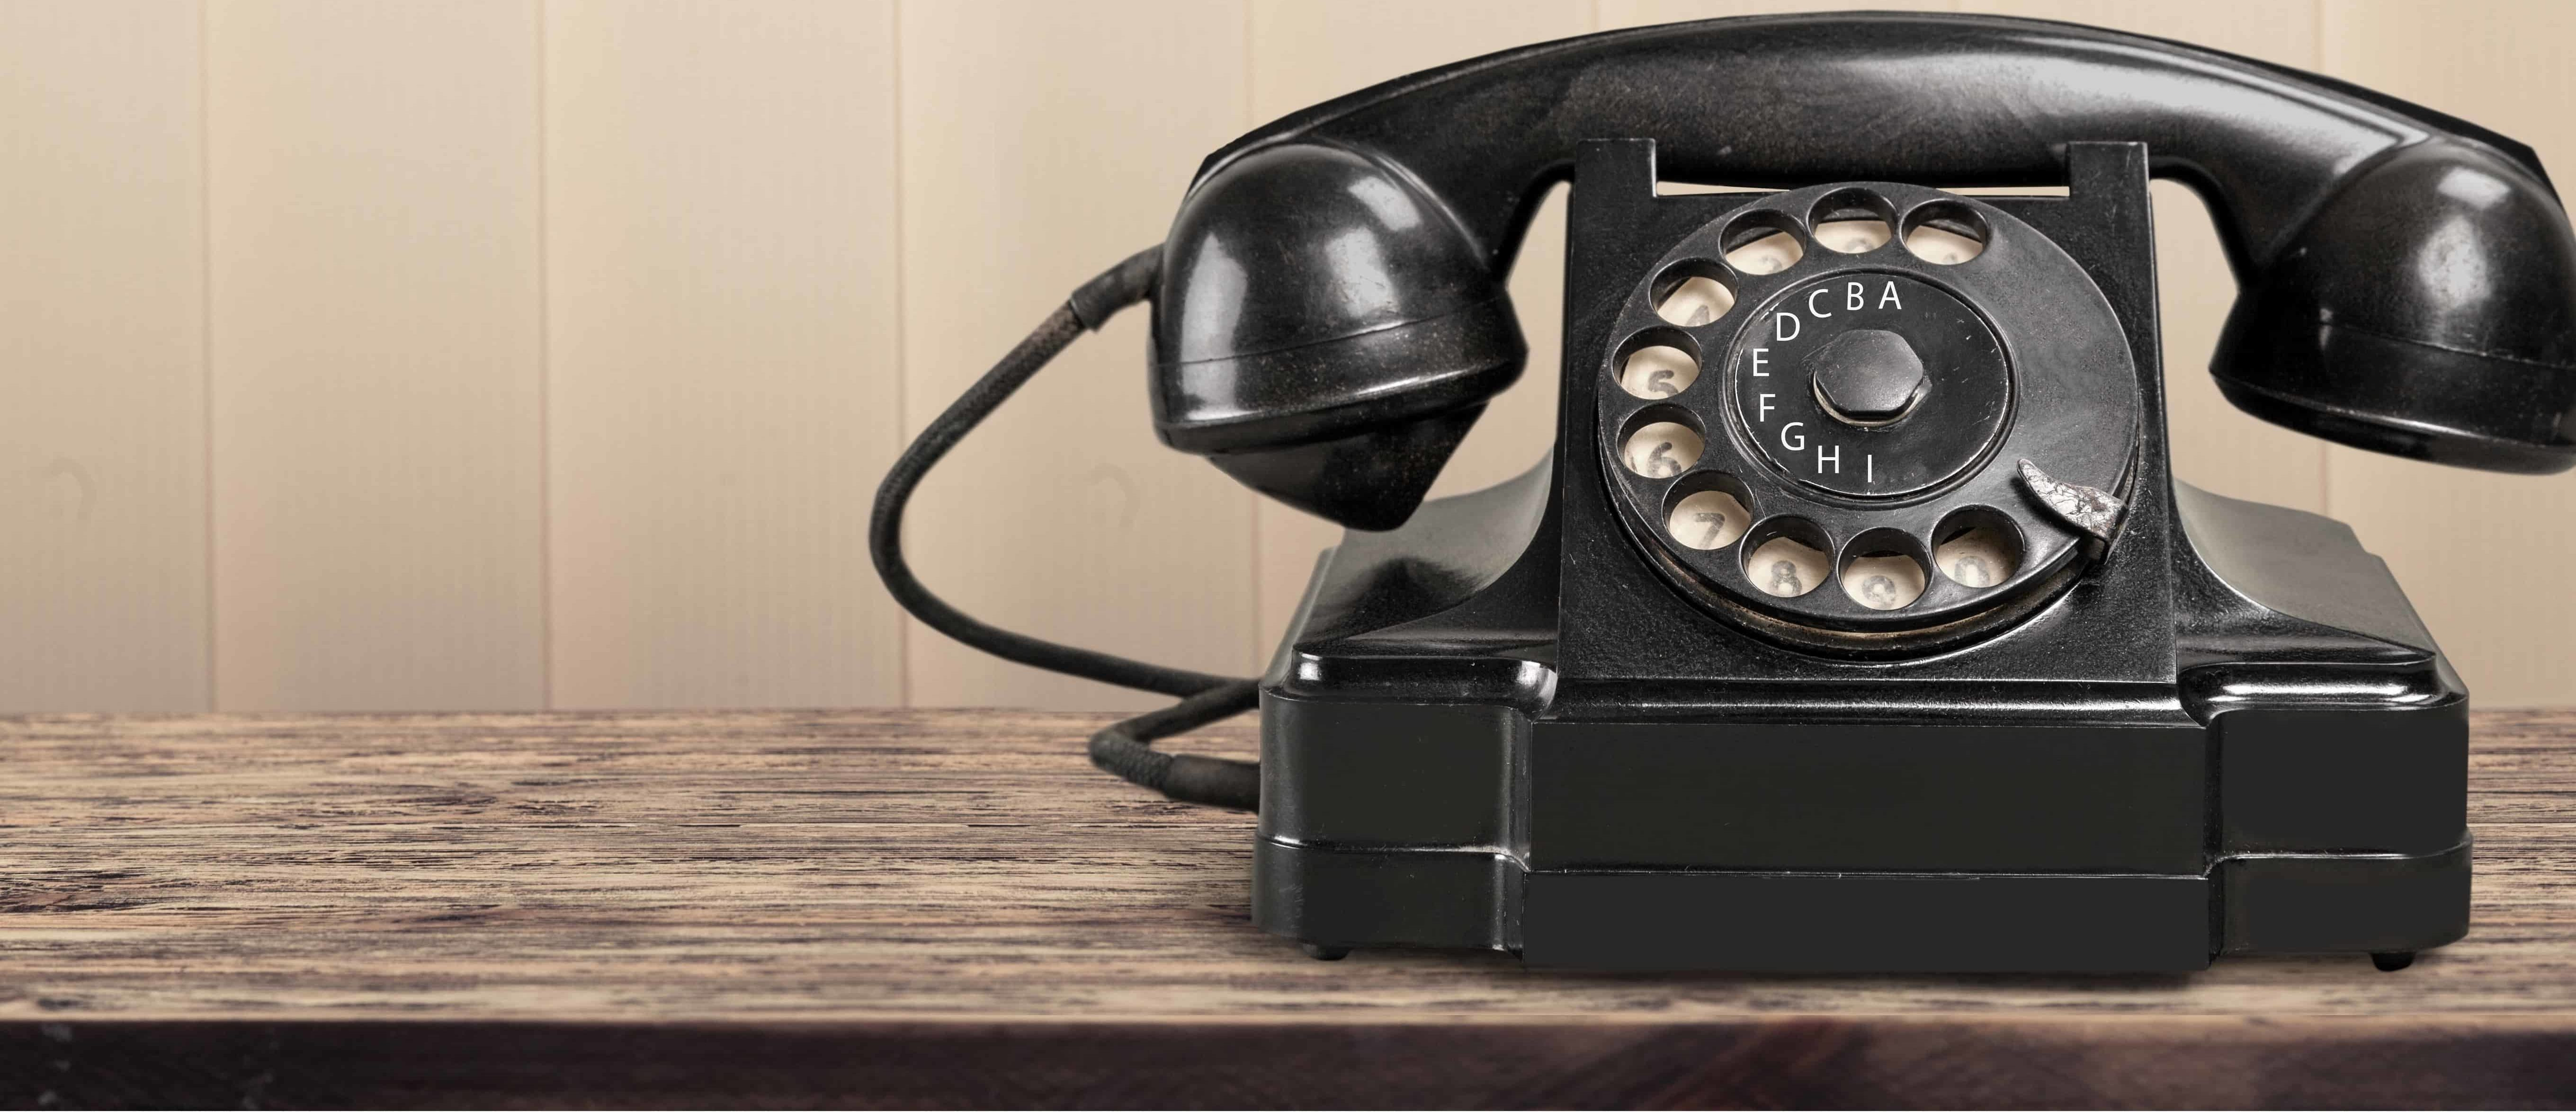 3 Reasons Not To Wait To Repair End-of-Life Phone System